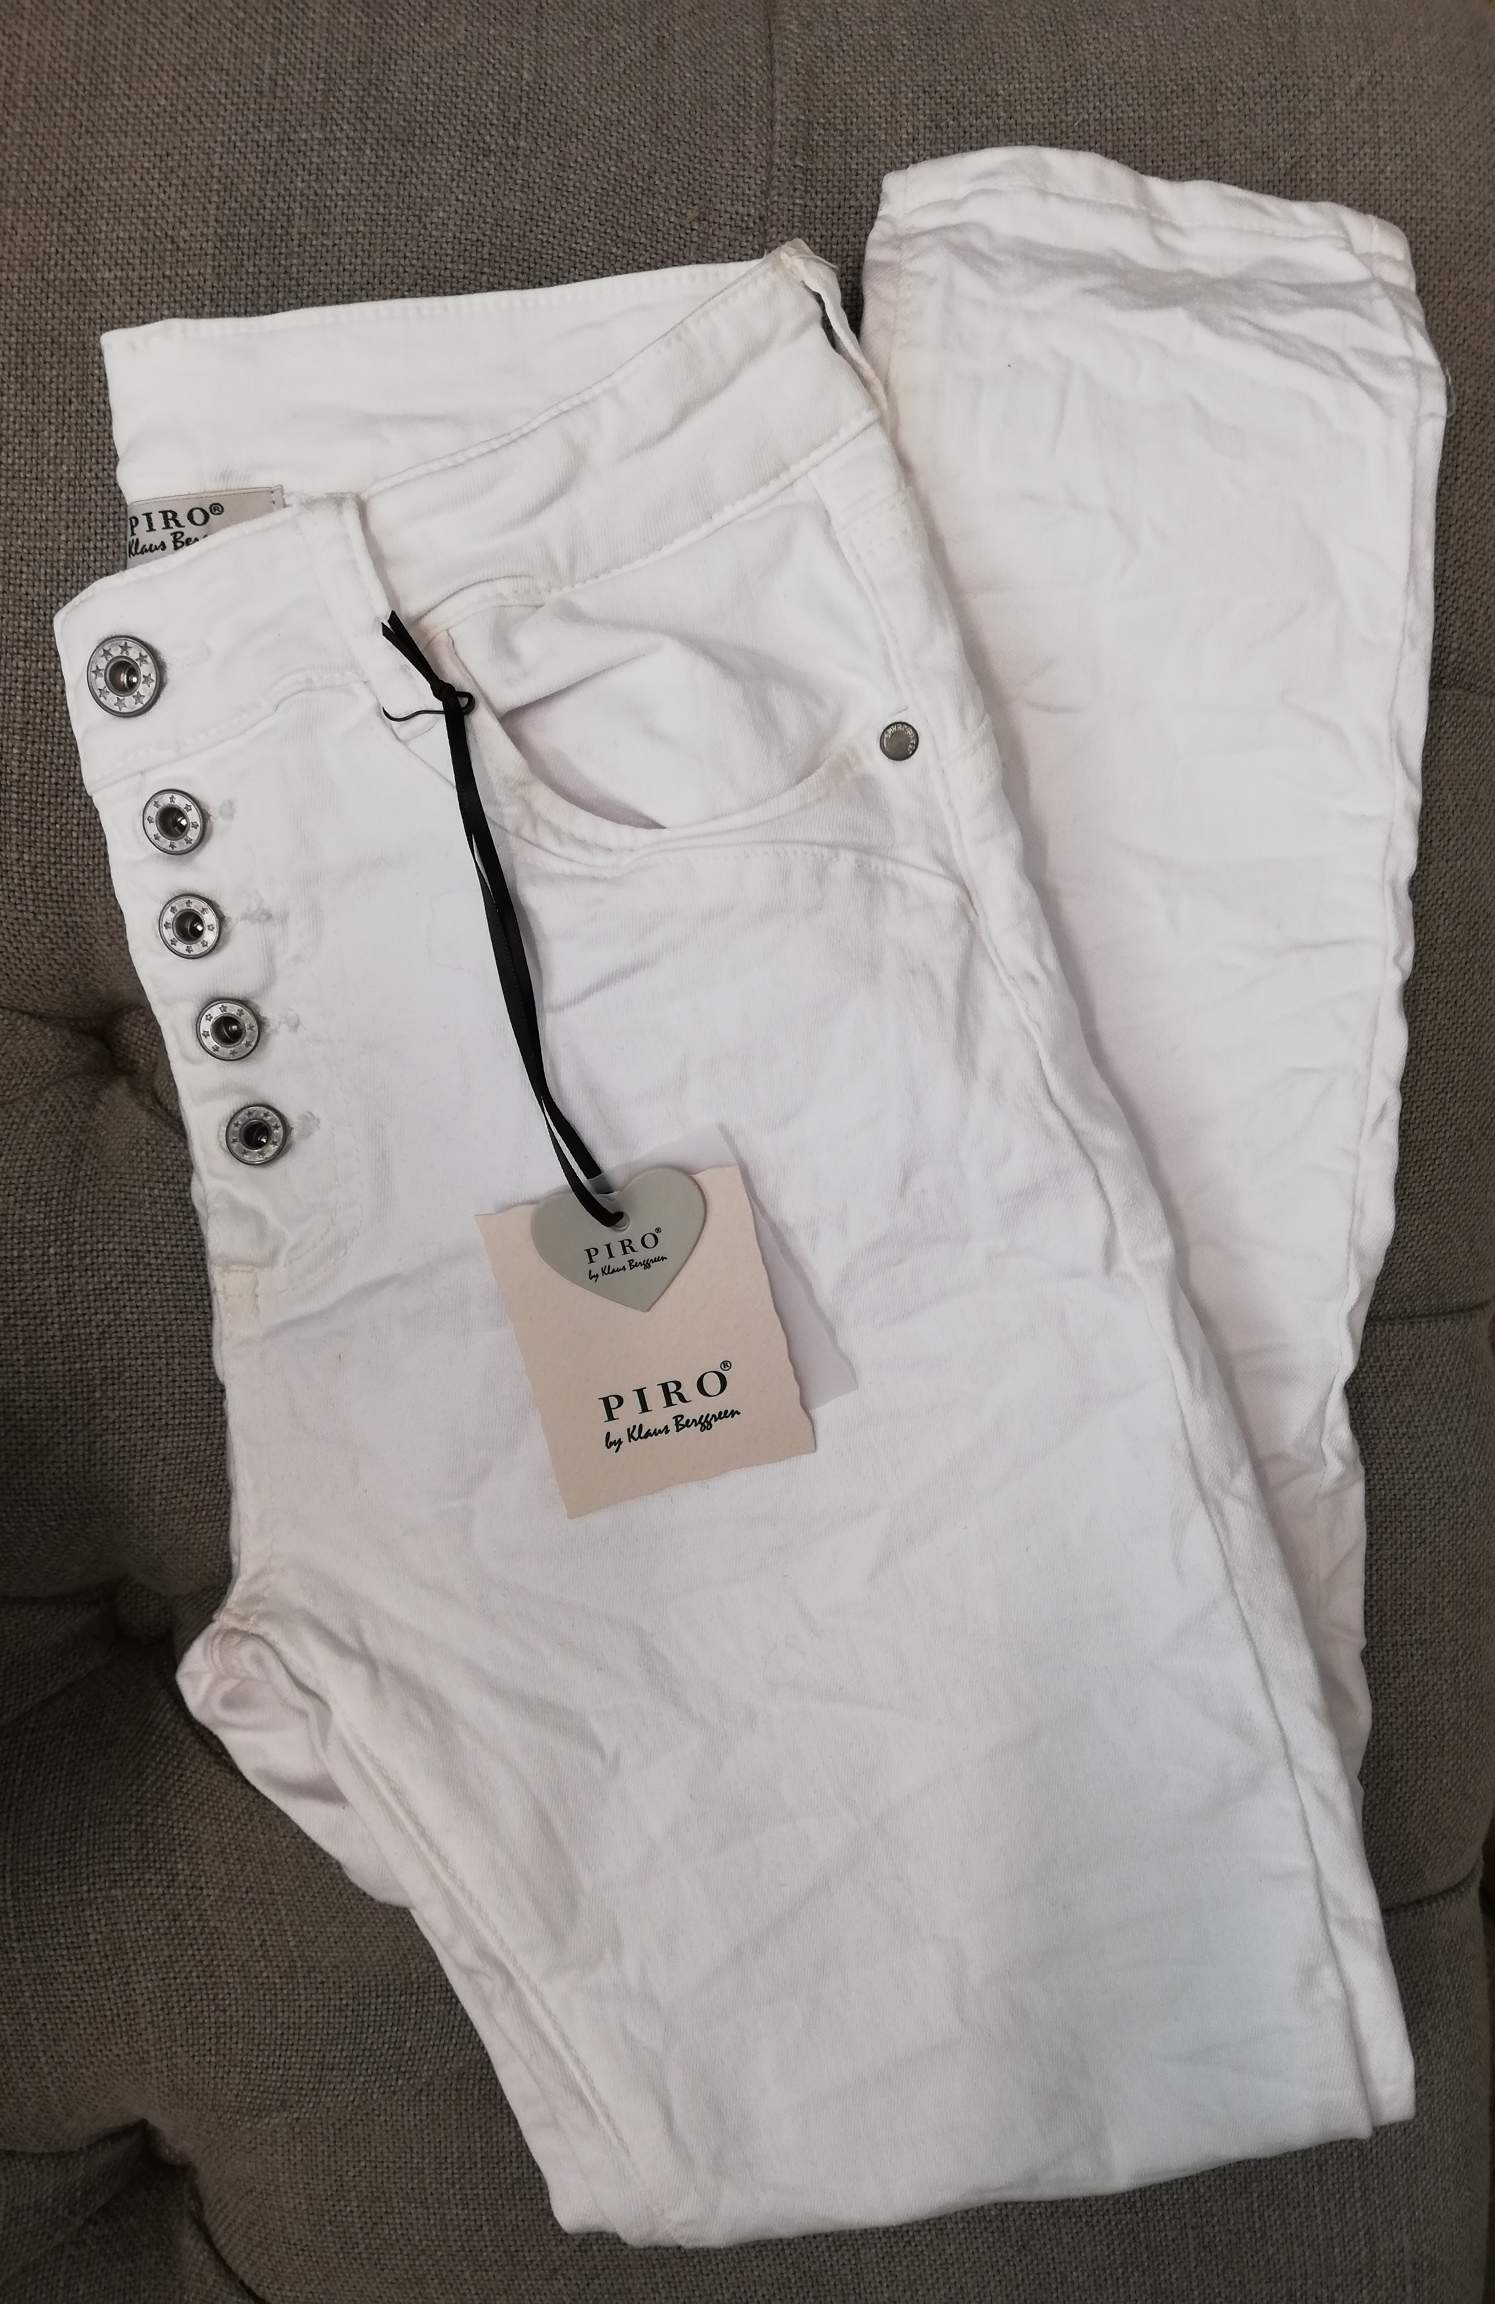 PIRO Jeans BP101-01 White